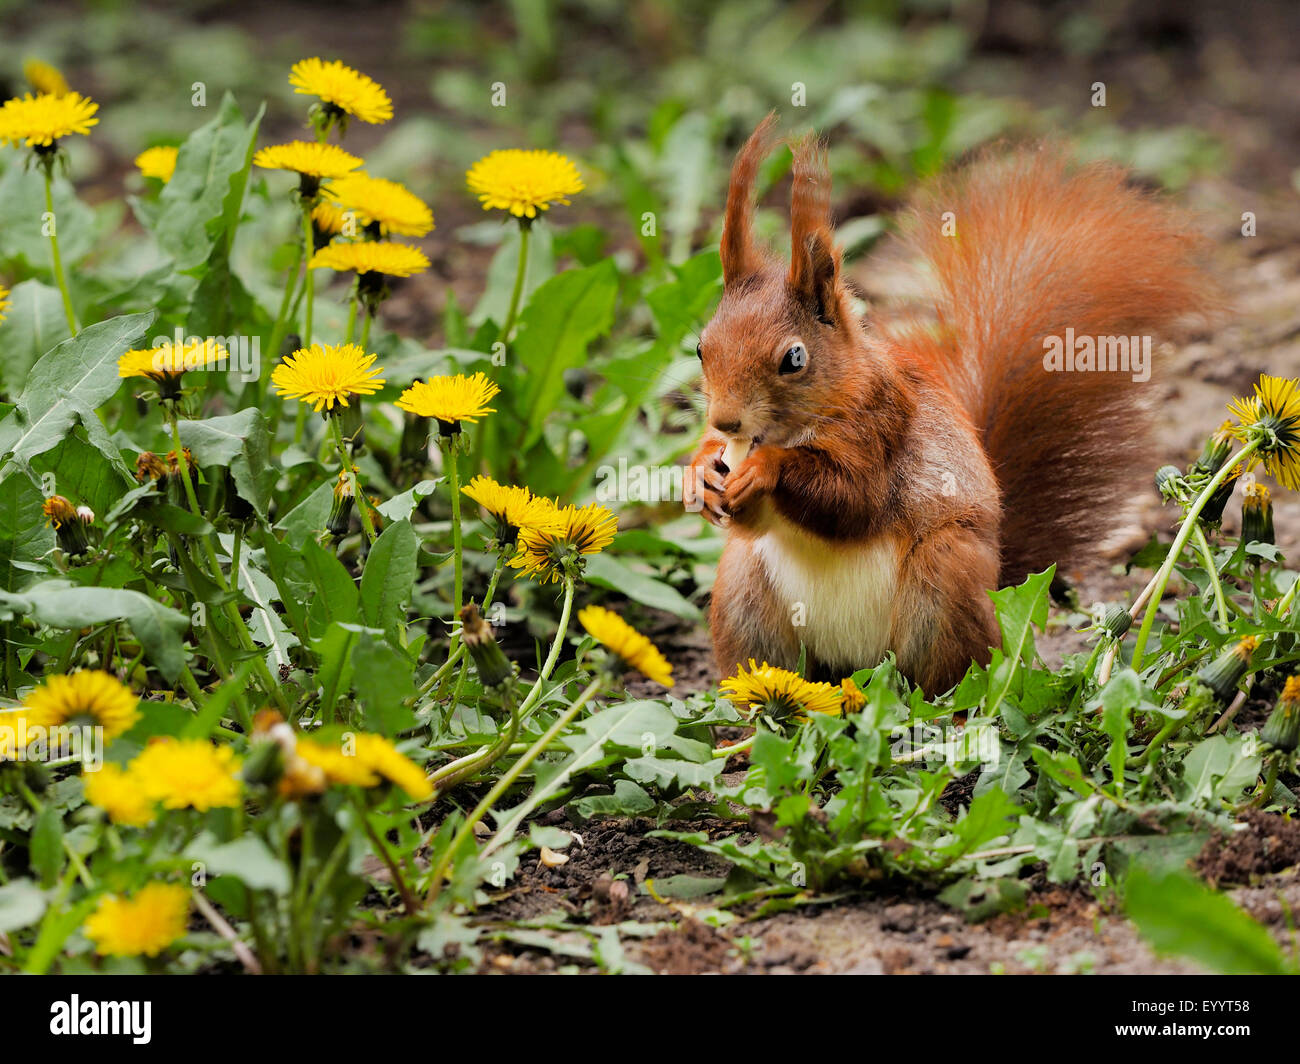 European red squirrel, Eurasian red squirrel (Sciurus vulgaris), in a meadow with dandelion, Germany, Saxony - Stock Image